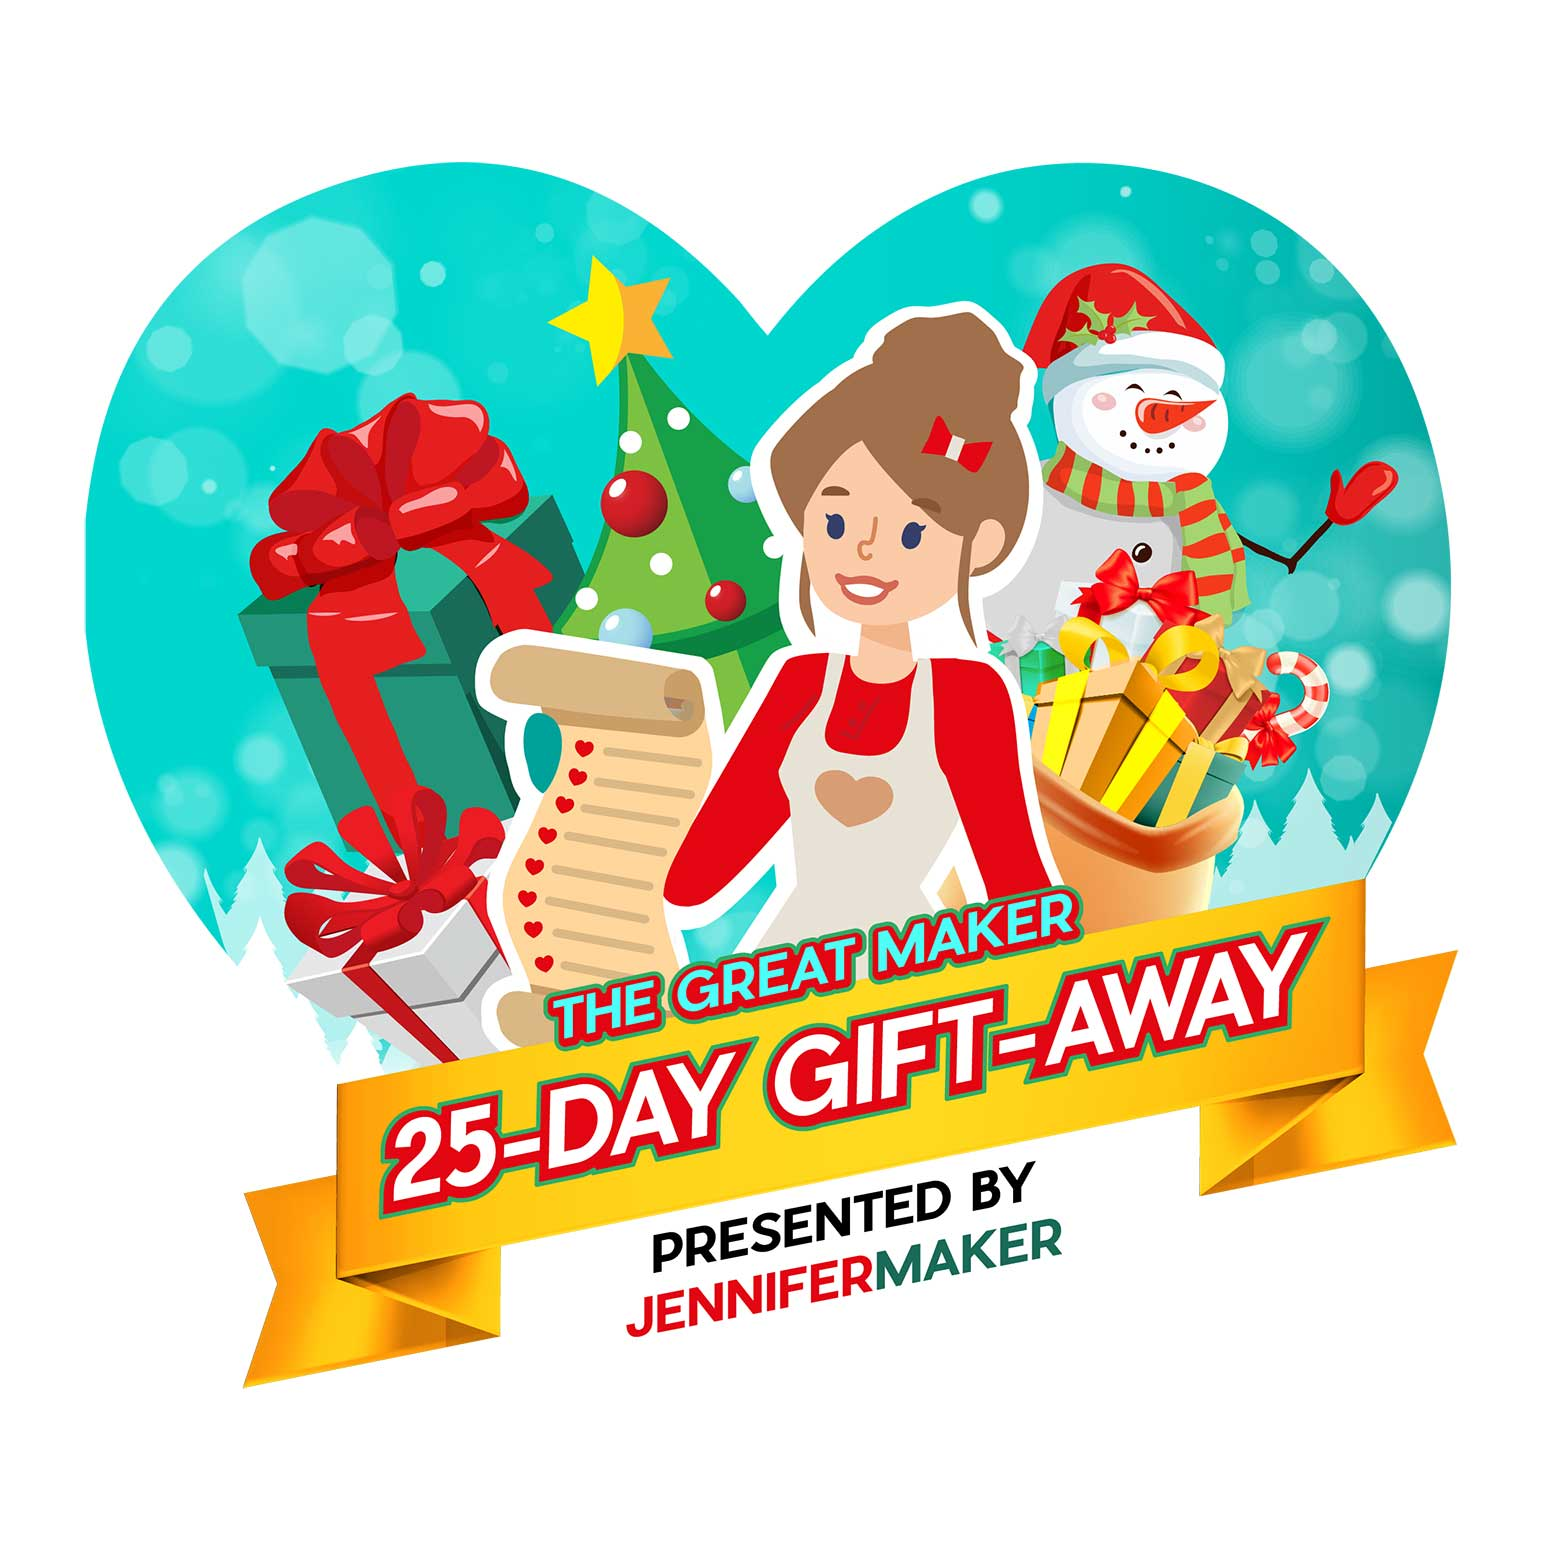 The Great Maker 25-Day Gift-Away Extravaganza for 2020